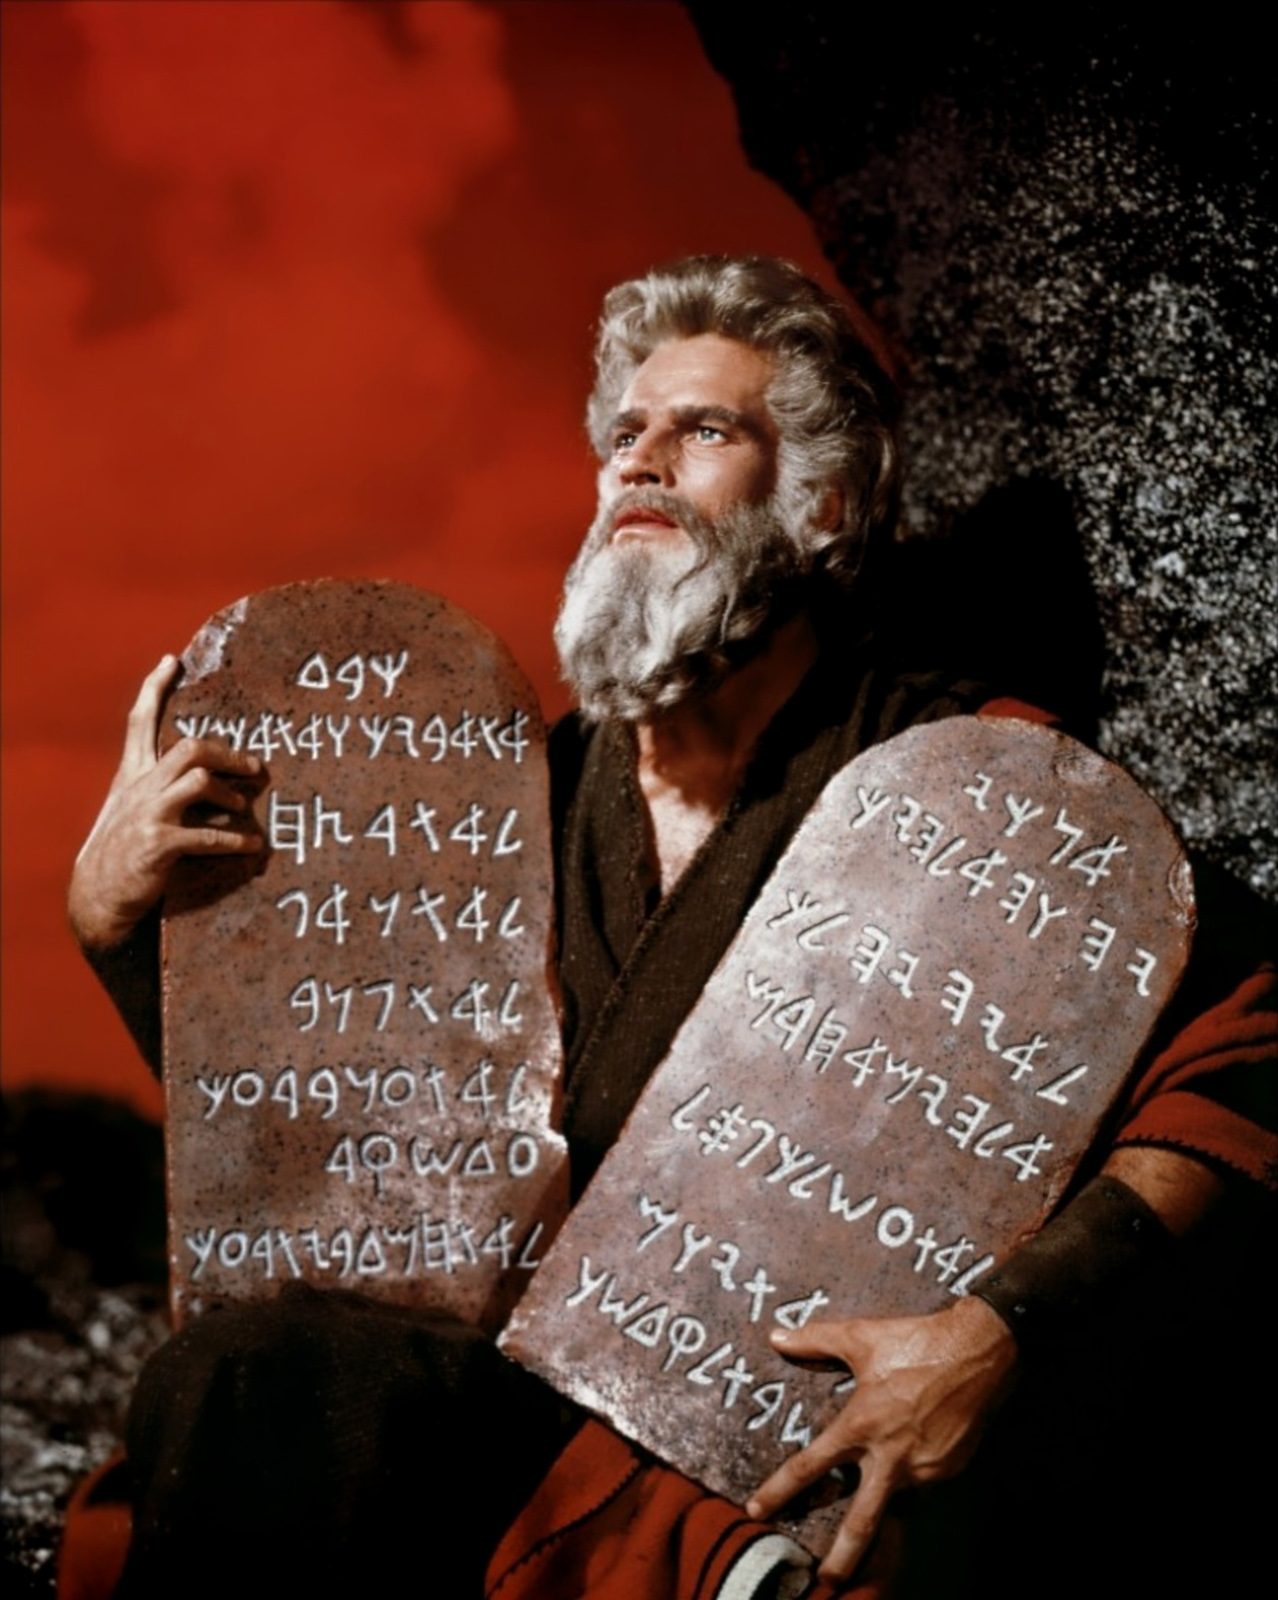 Rules about blogging may be just as valuable as the 10 commandments